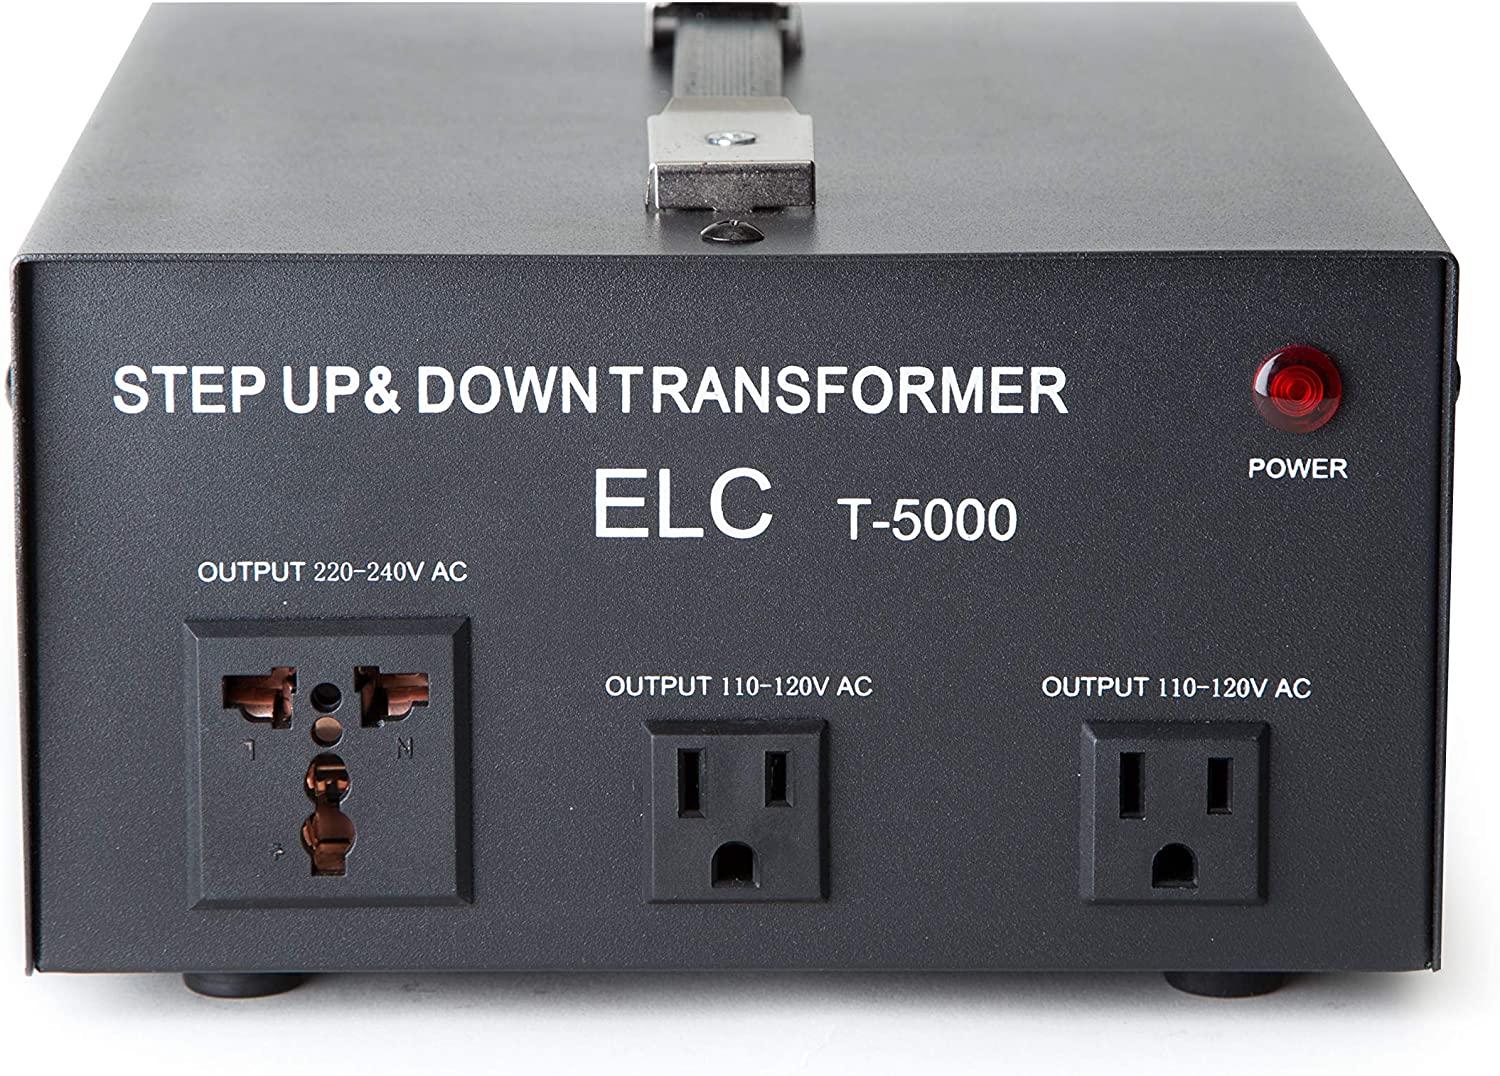 Amazon Com Elc T 5000 5000 Watt Voltage Converter Transformer Step Up Down 110v 220v Circuit Breaker Protection 3 Years Warranty Home Audio Theater